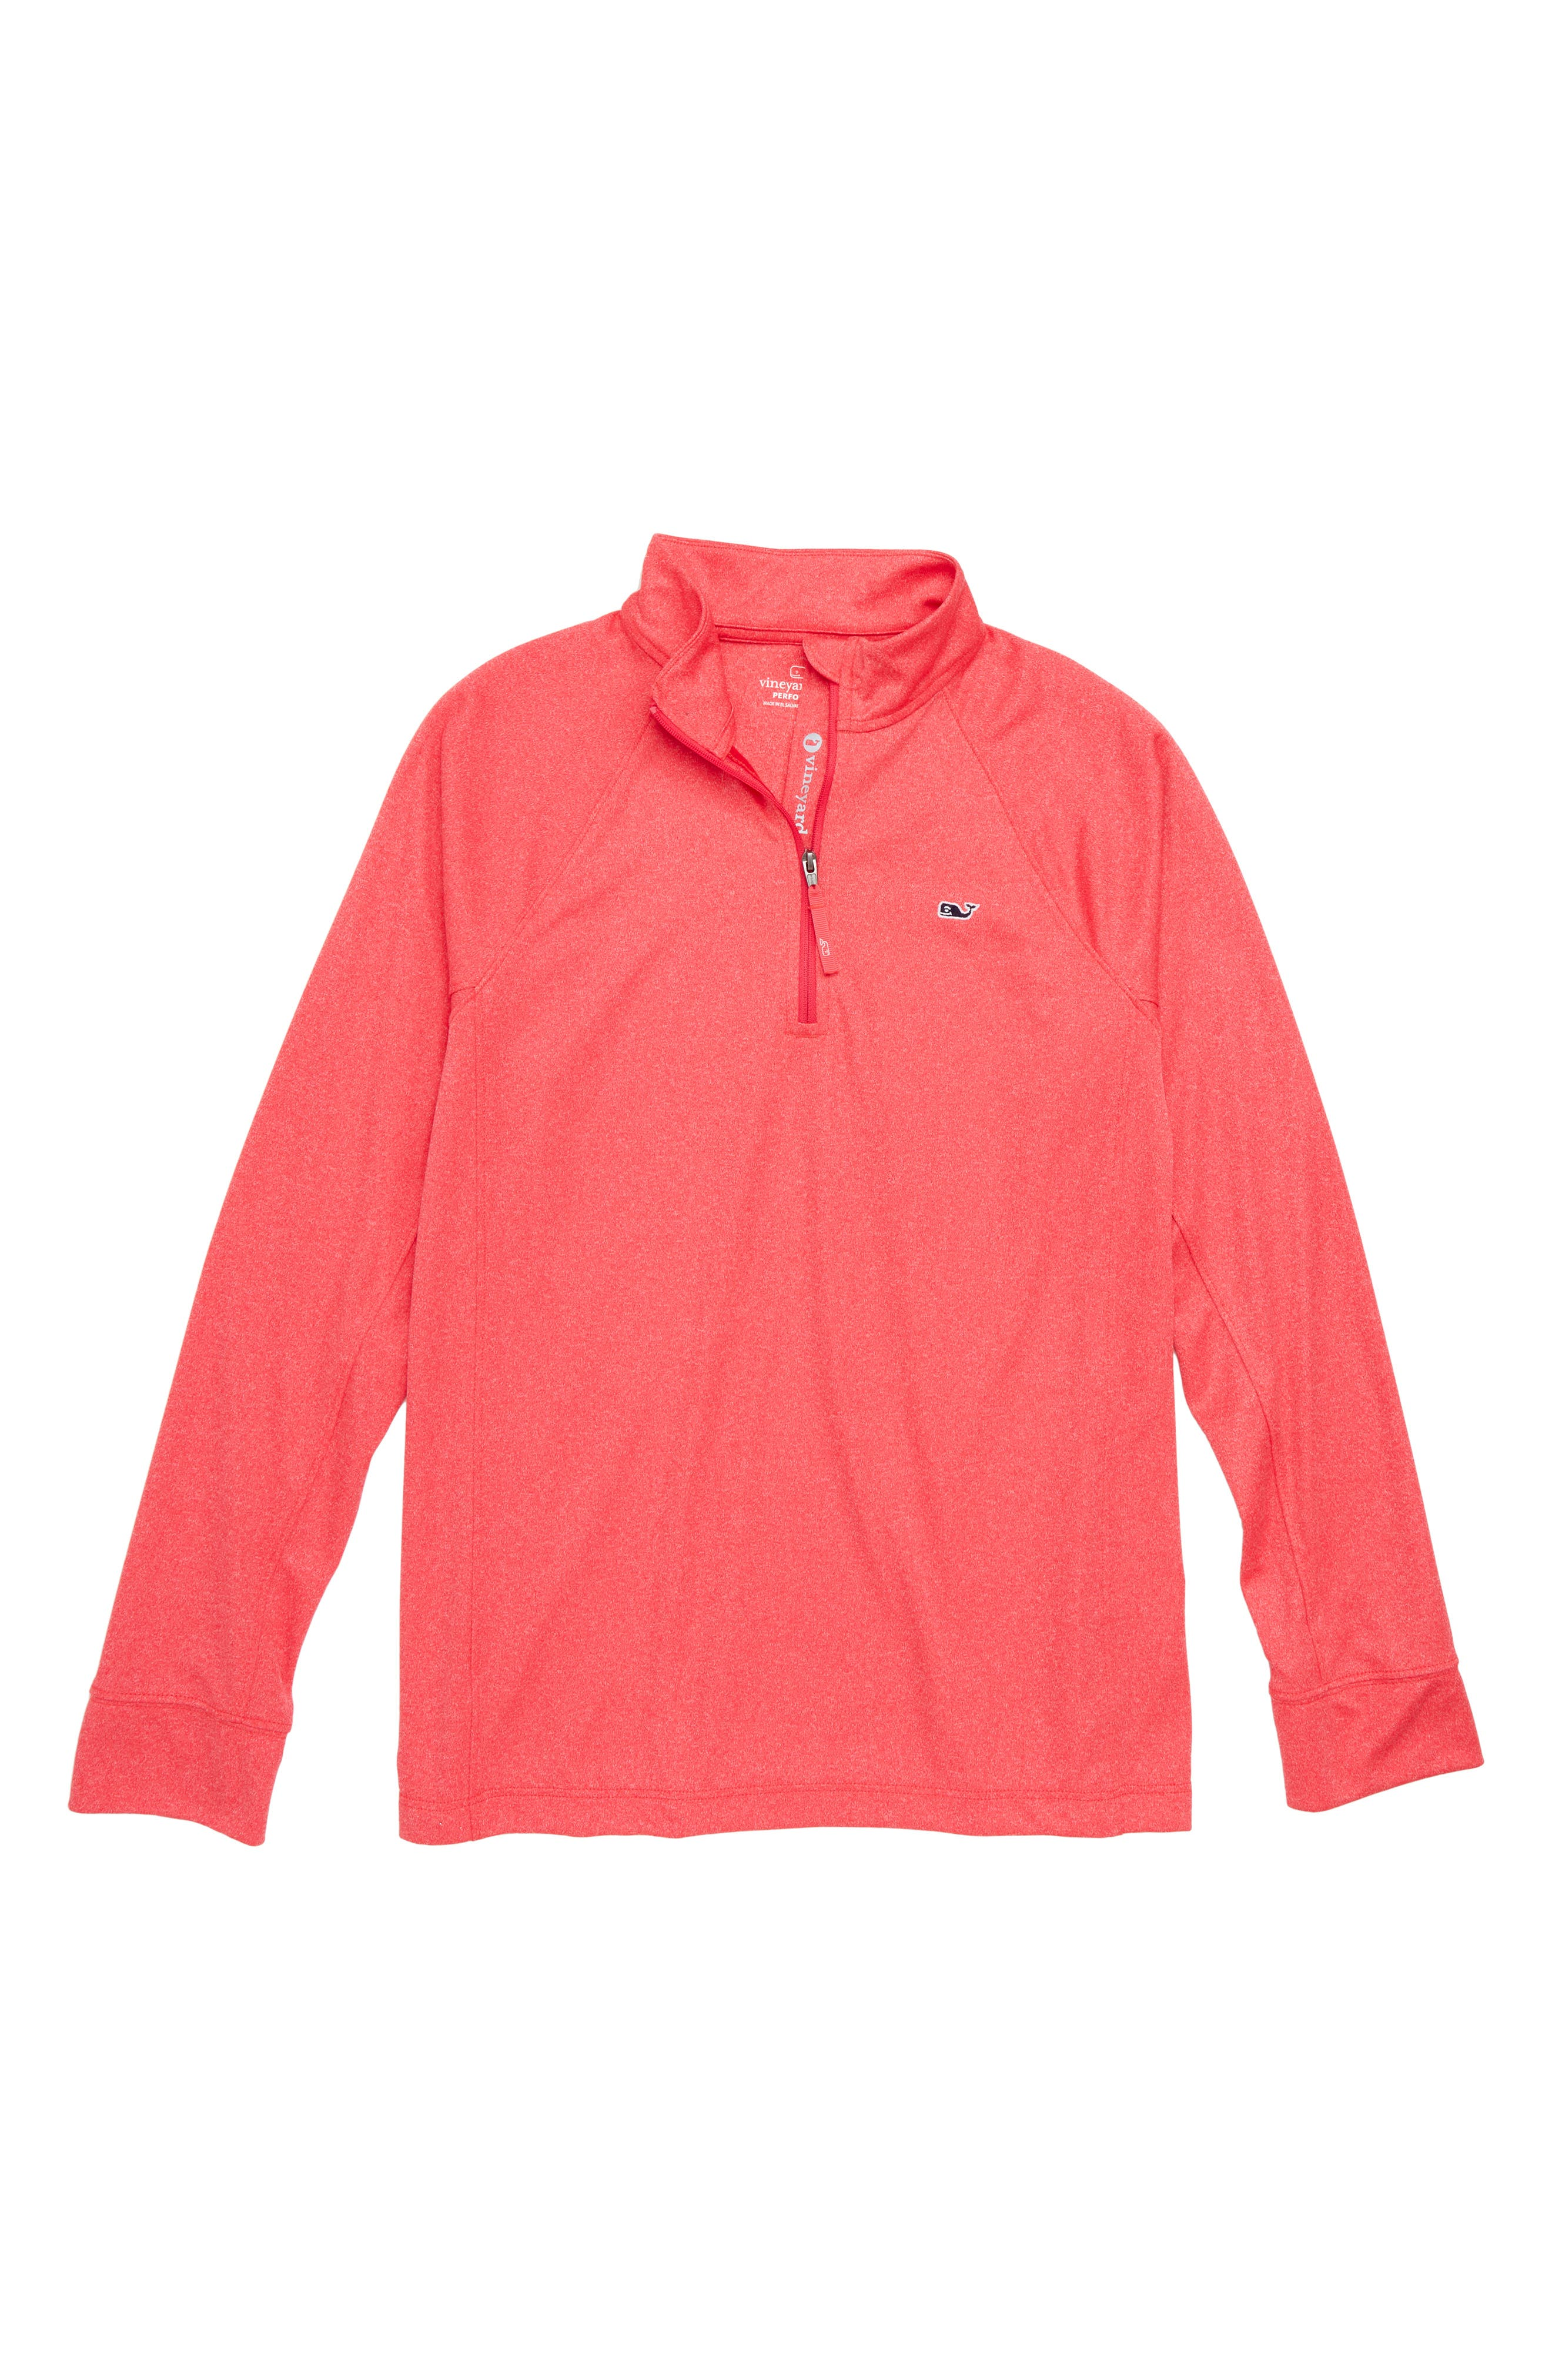 Quarter Zip Pullover,                         Main,                         color, Lighthouse Red